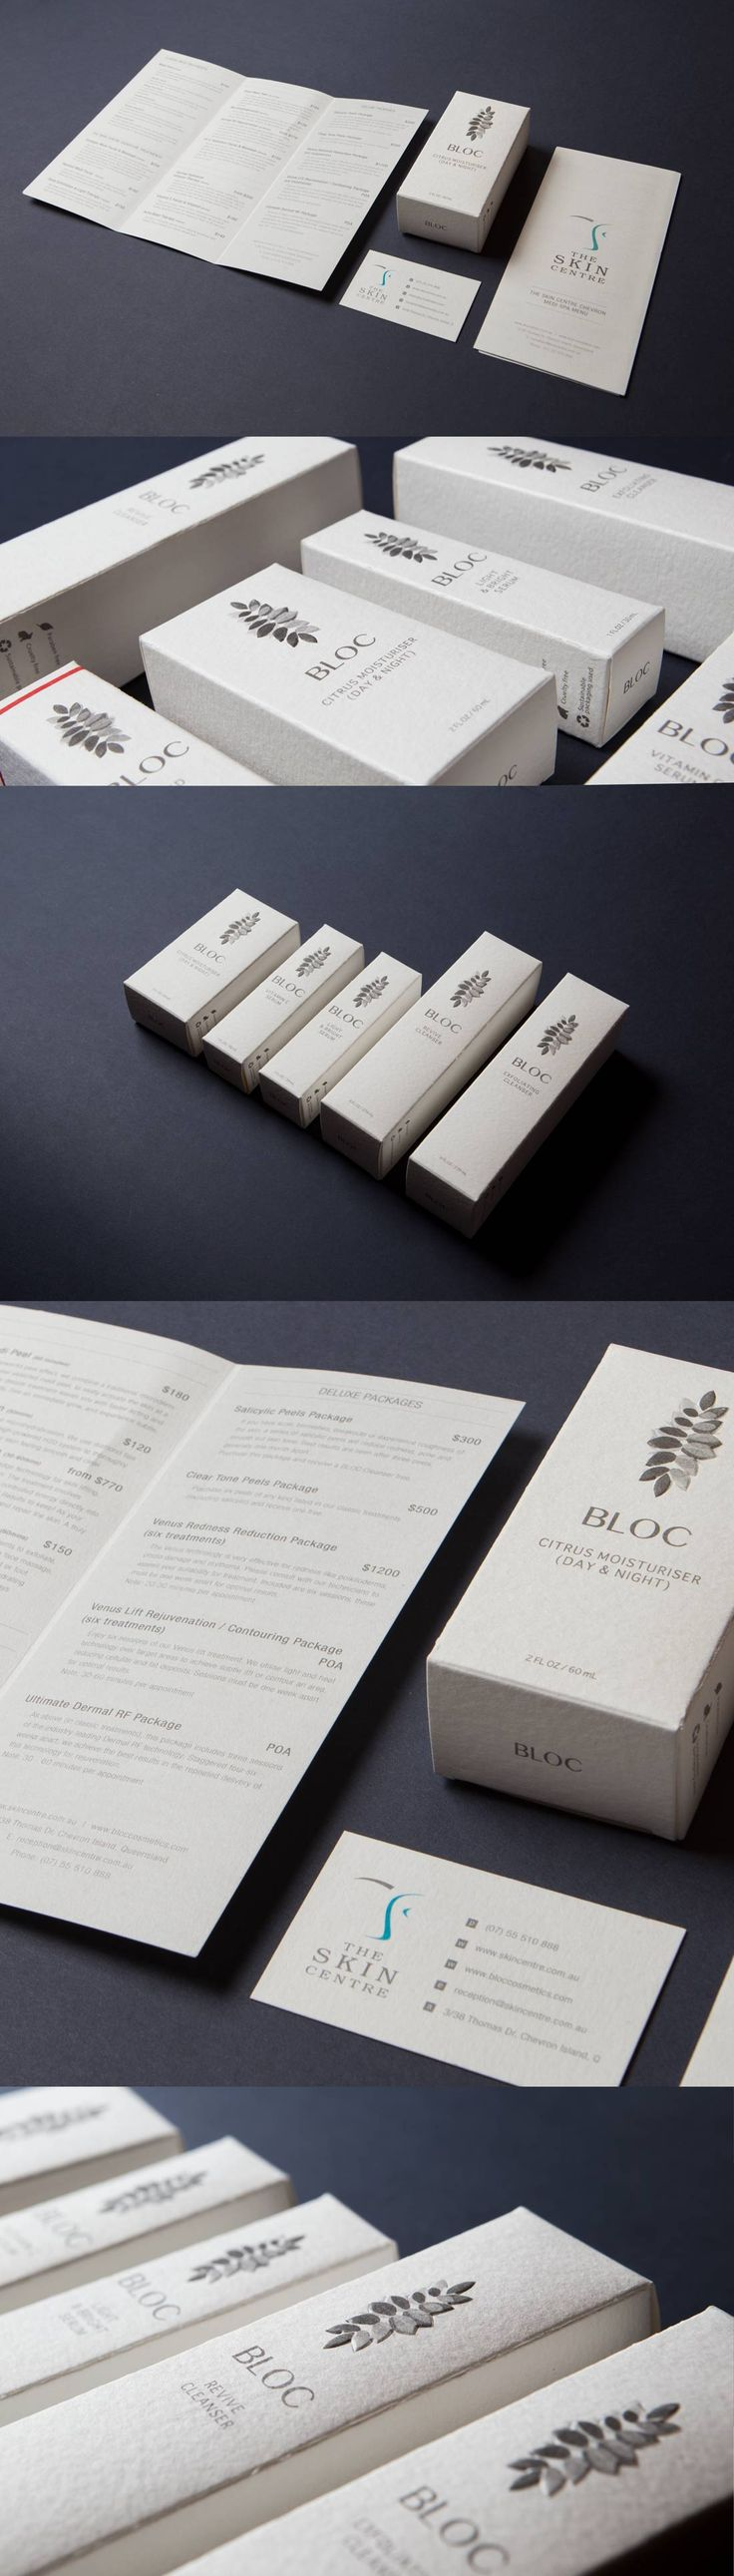 Bloc Cosmetics & The Skin Centre - Packaging Design - KW Doggets Wild Stock - Embossed - By The Graphic Design Company - Gold Coast - Australia